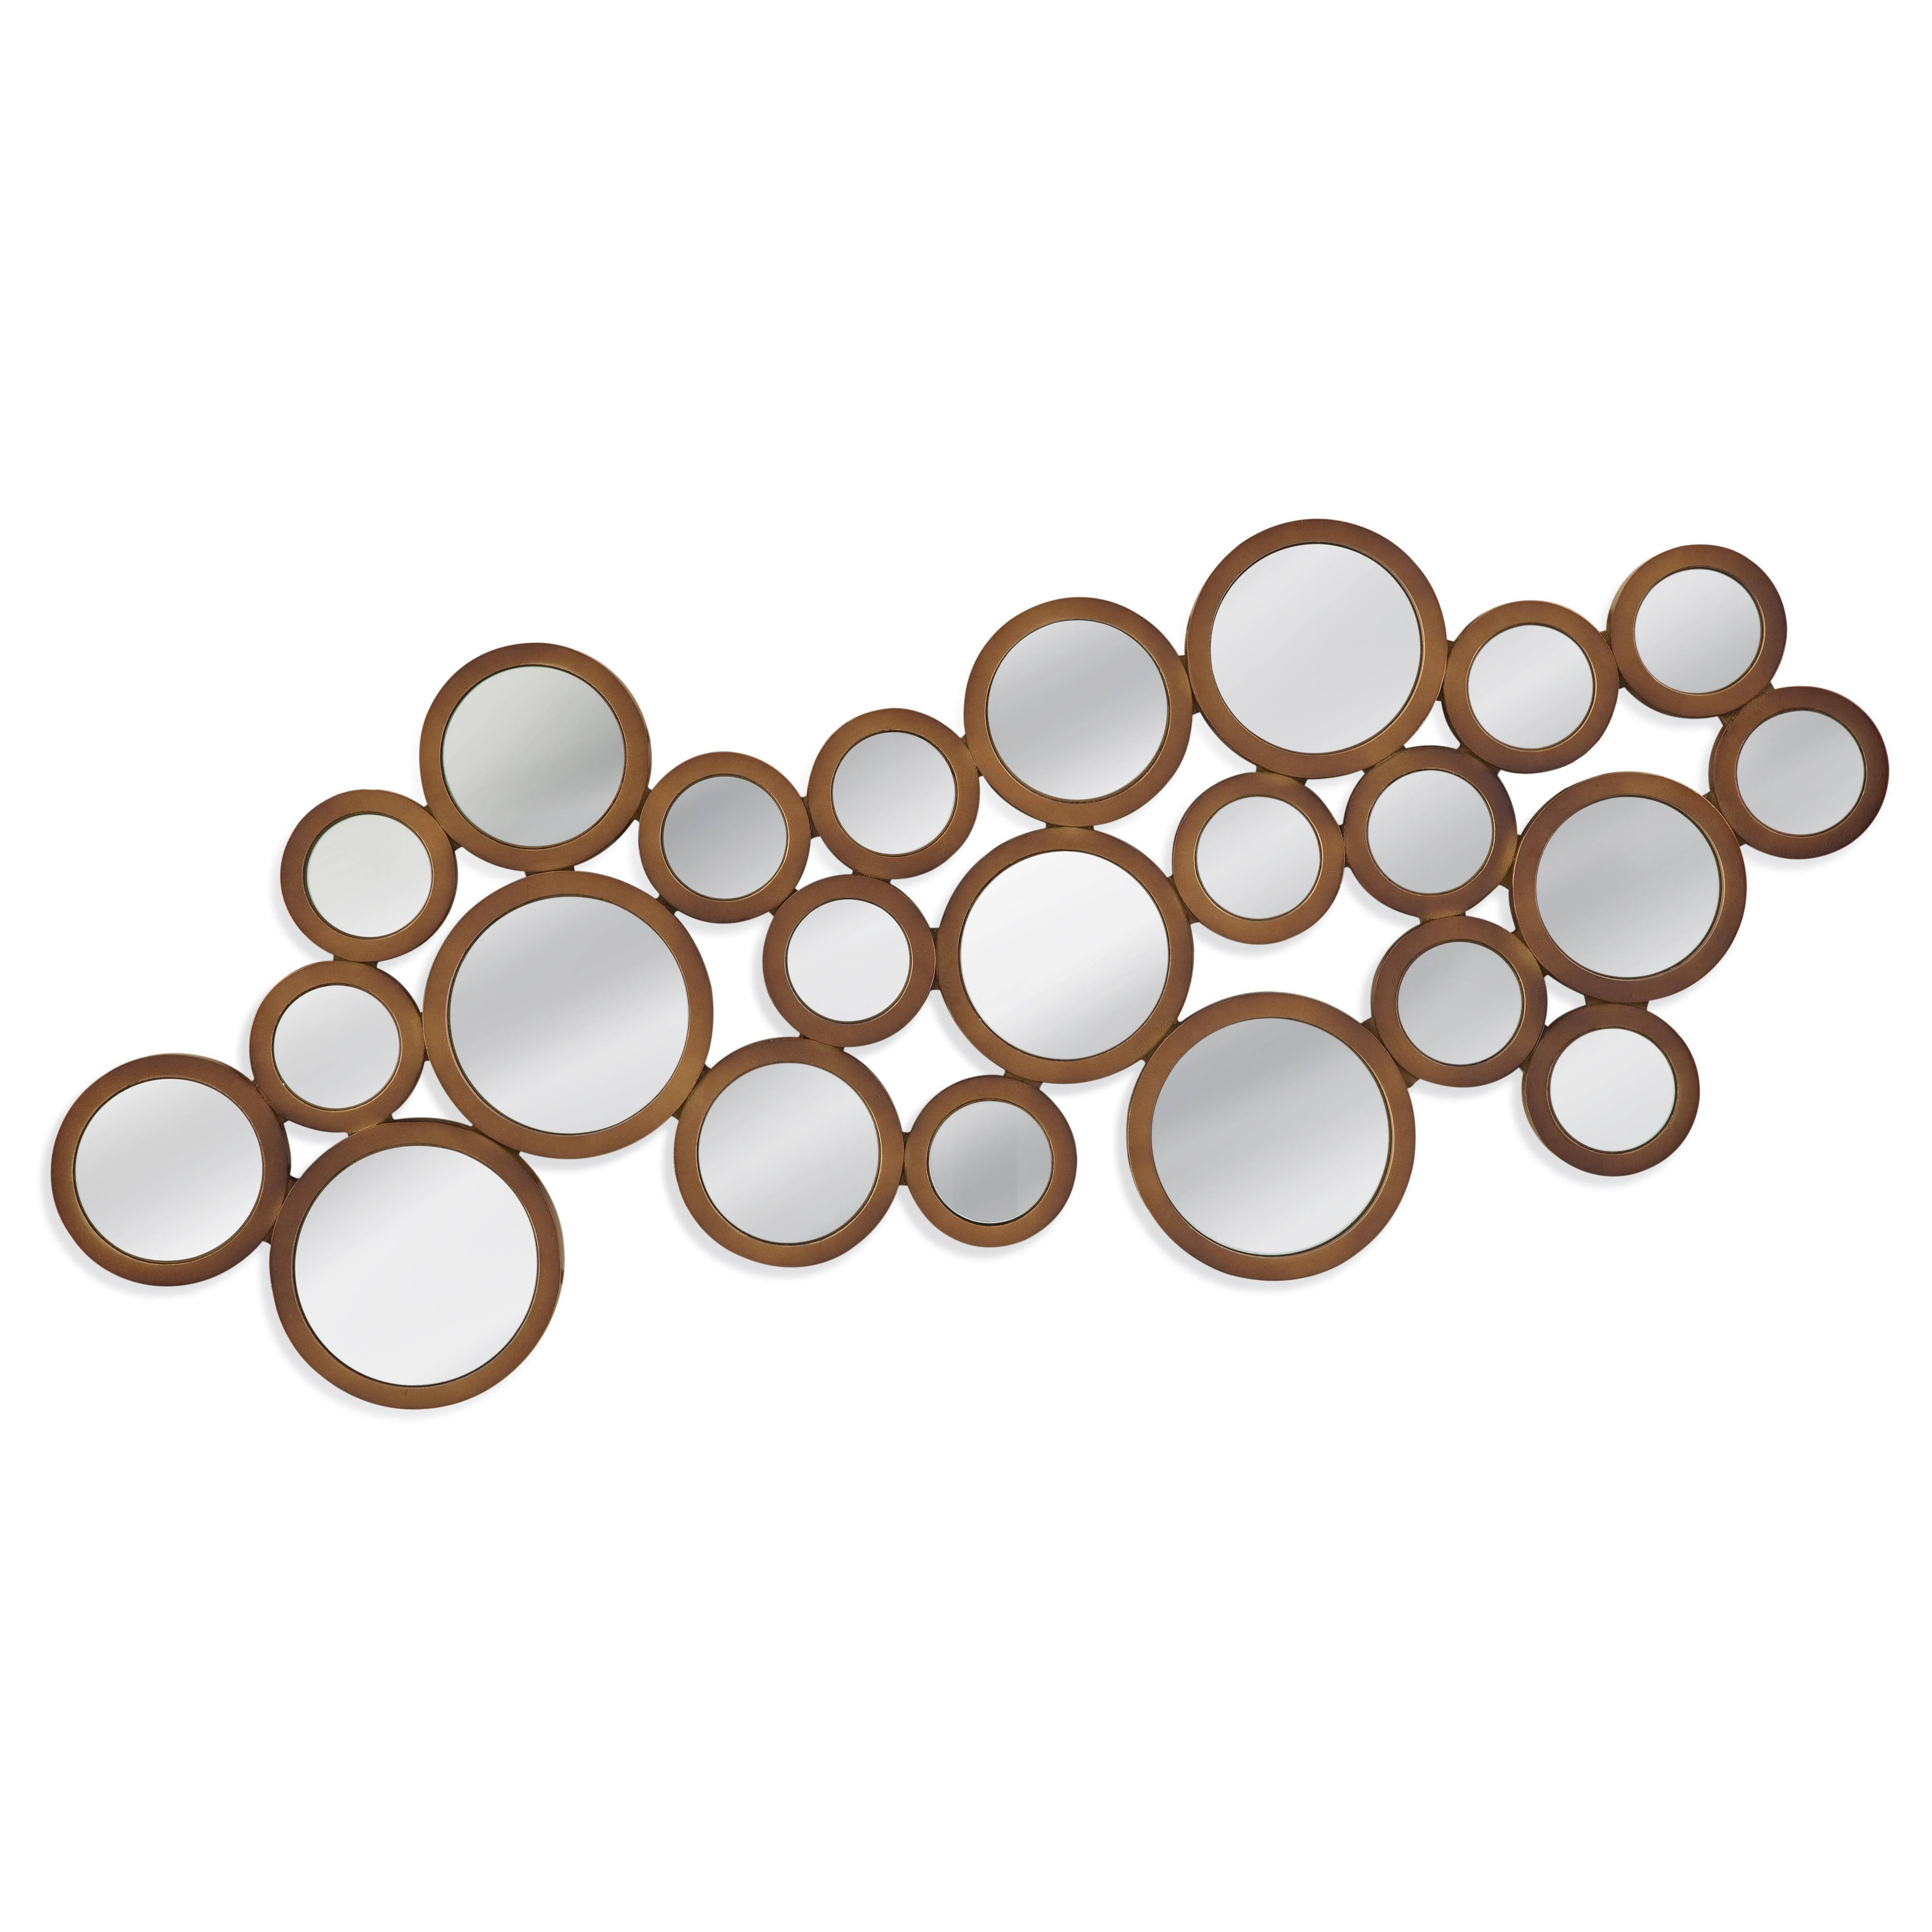 Hollywood Glam Beverly Wall Hanging by Bassett Mirror at Lapeer Furniture & Mattress Center